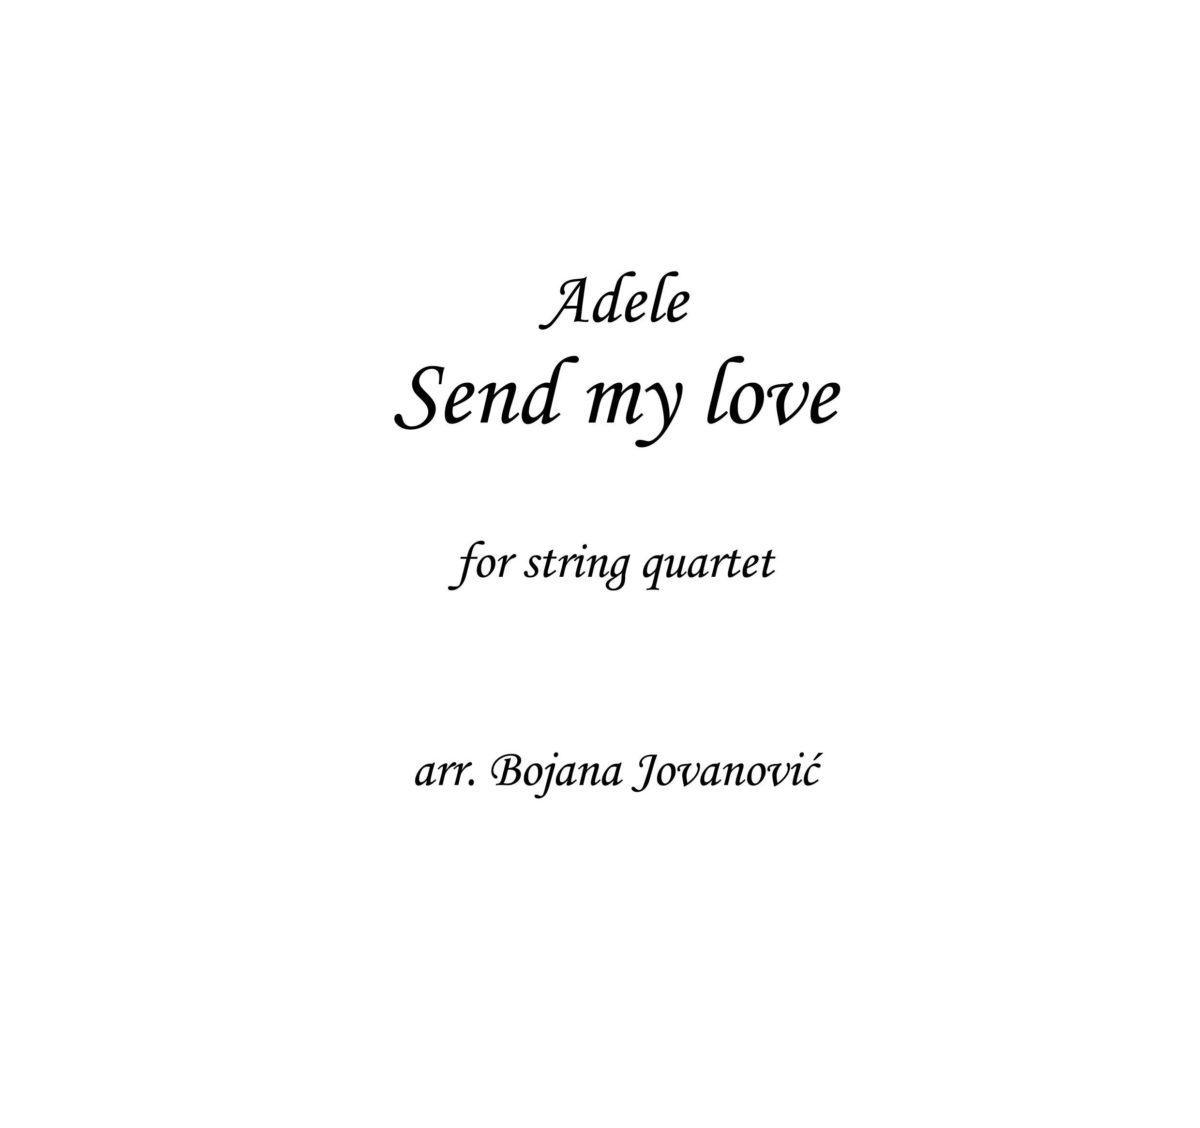 Send my love (Adele) - Sheet Music